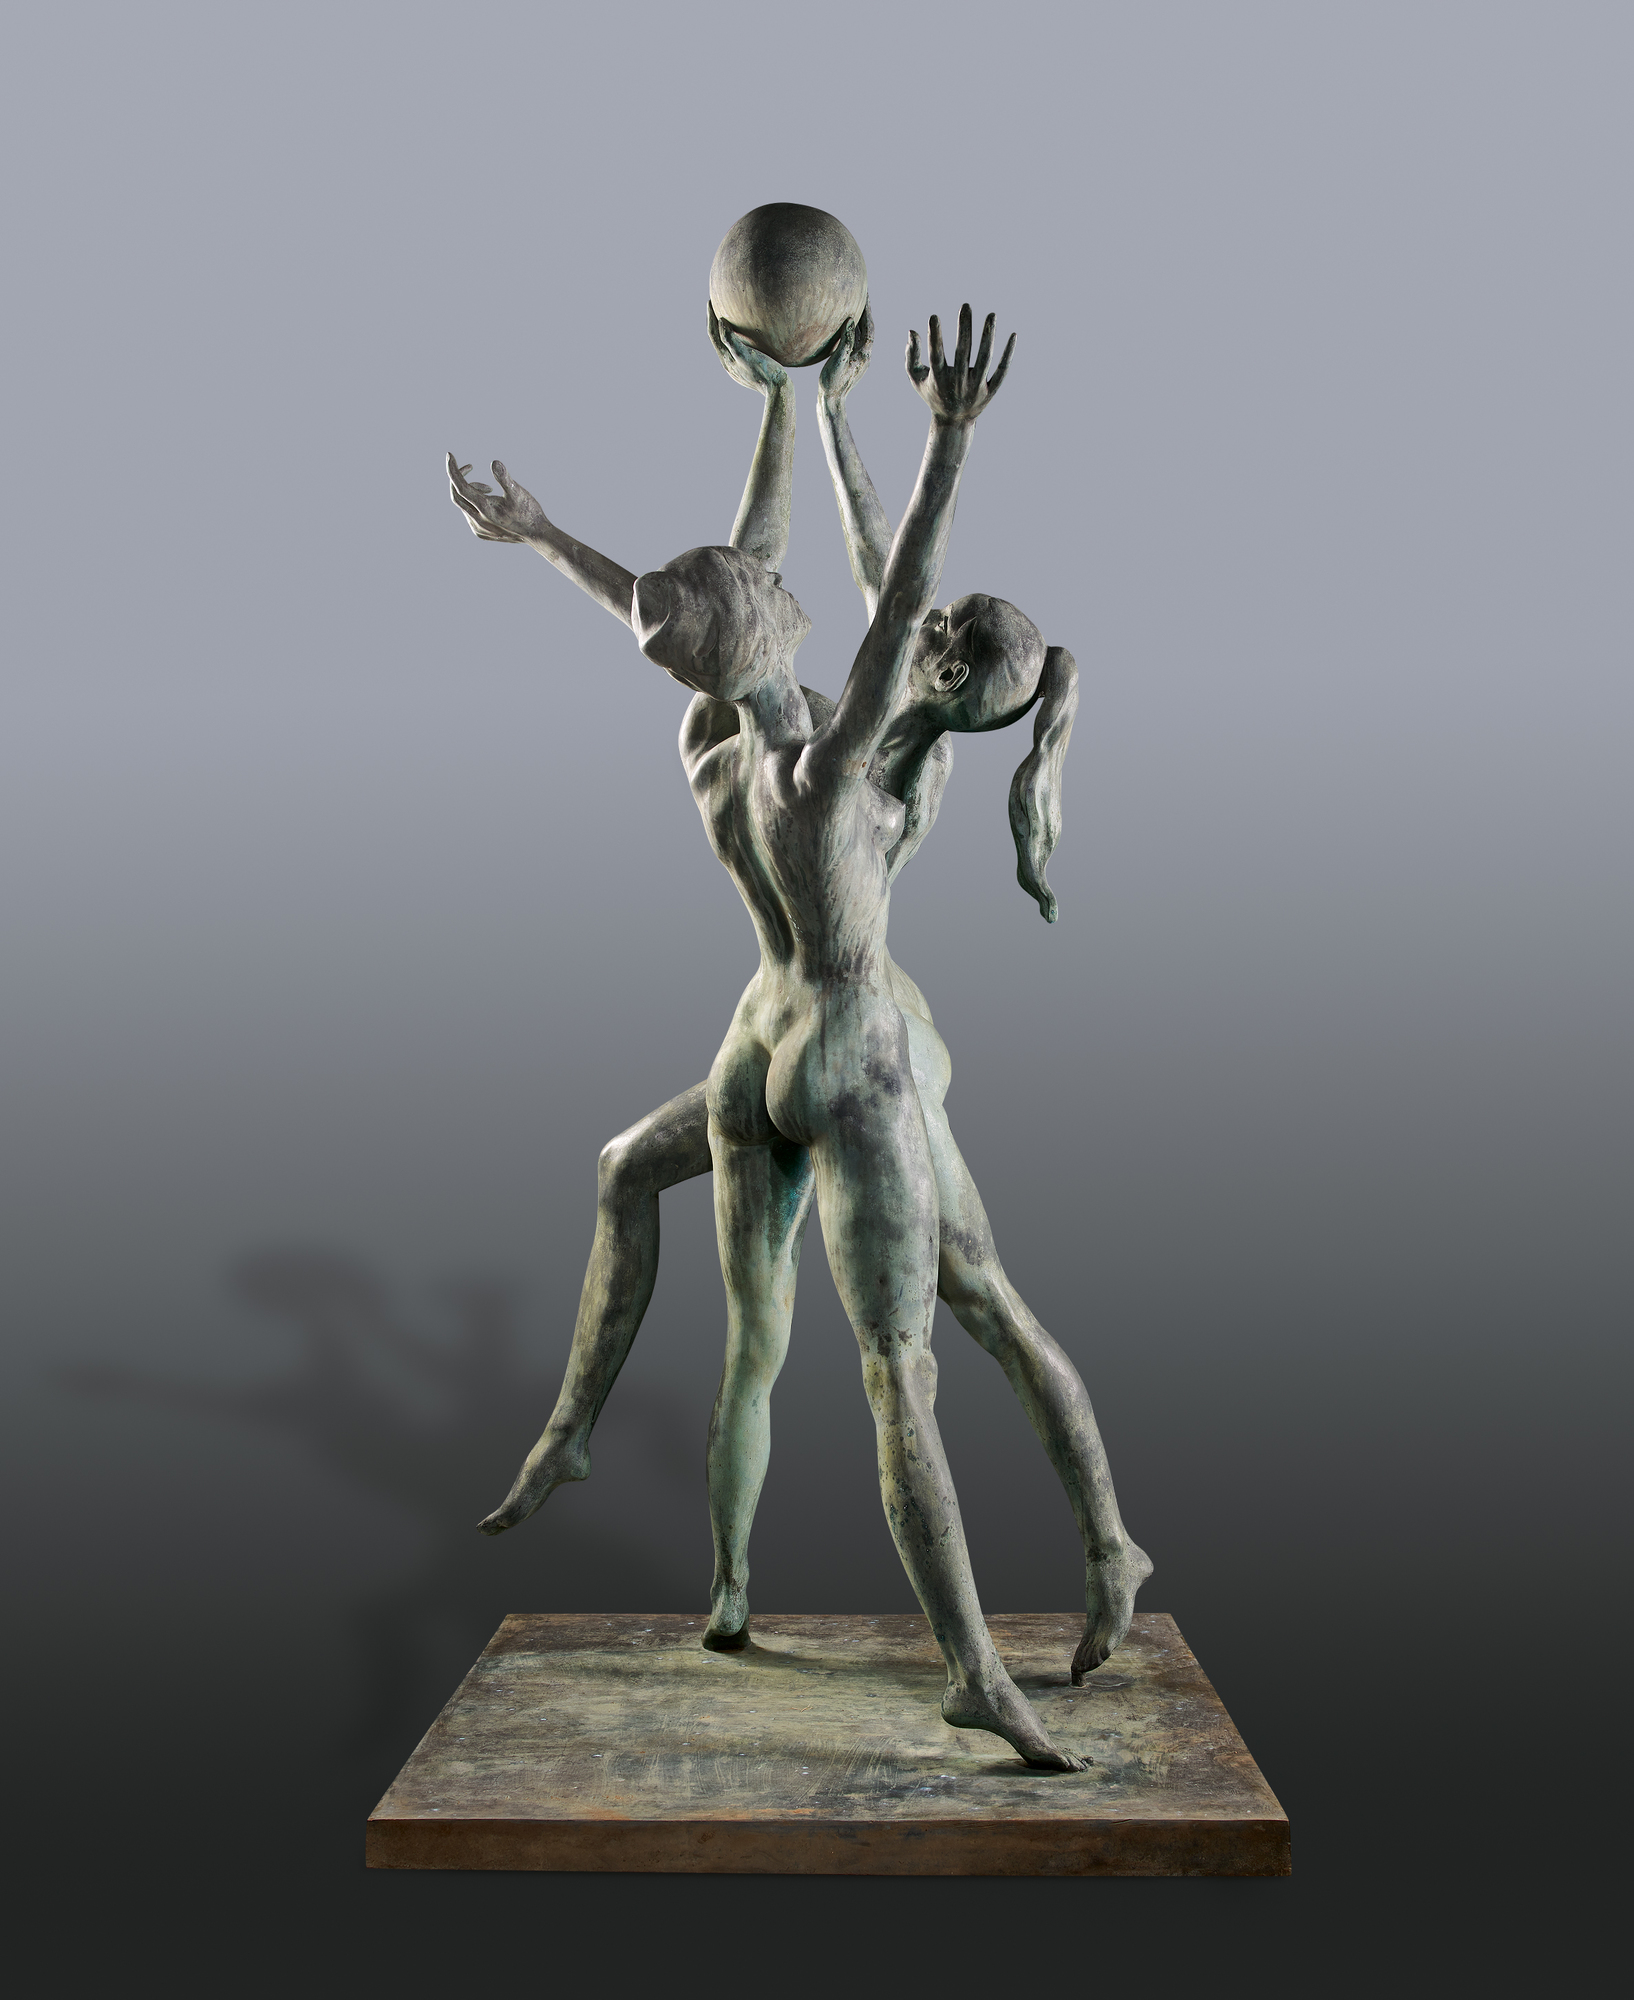 Limbach Hans Jörg, Ballspielerinnen (Nudes Playing Ball)